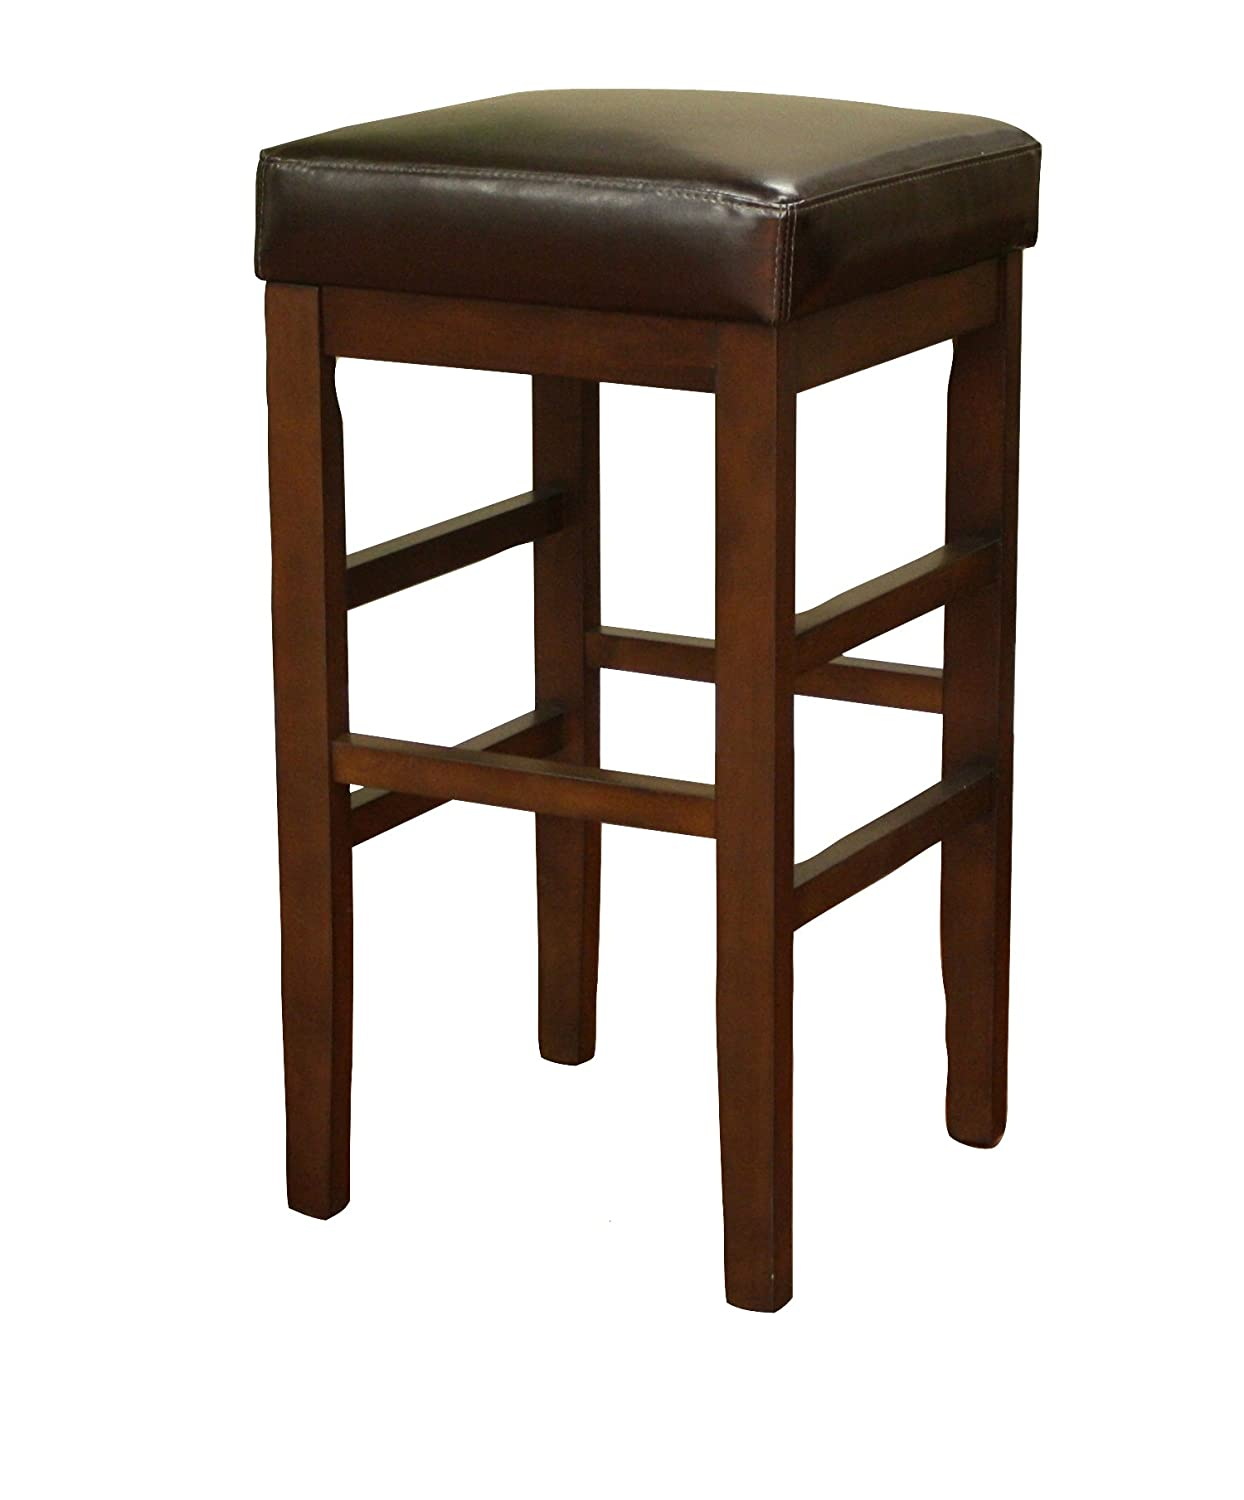 Amazon: American Heritage Billiards Empire Extra Tall Height Stool,  Brown: Kitchen & Dining